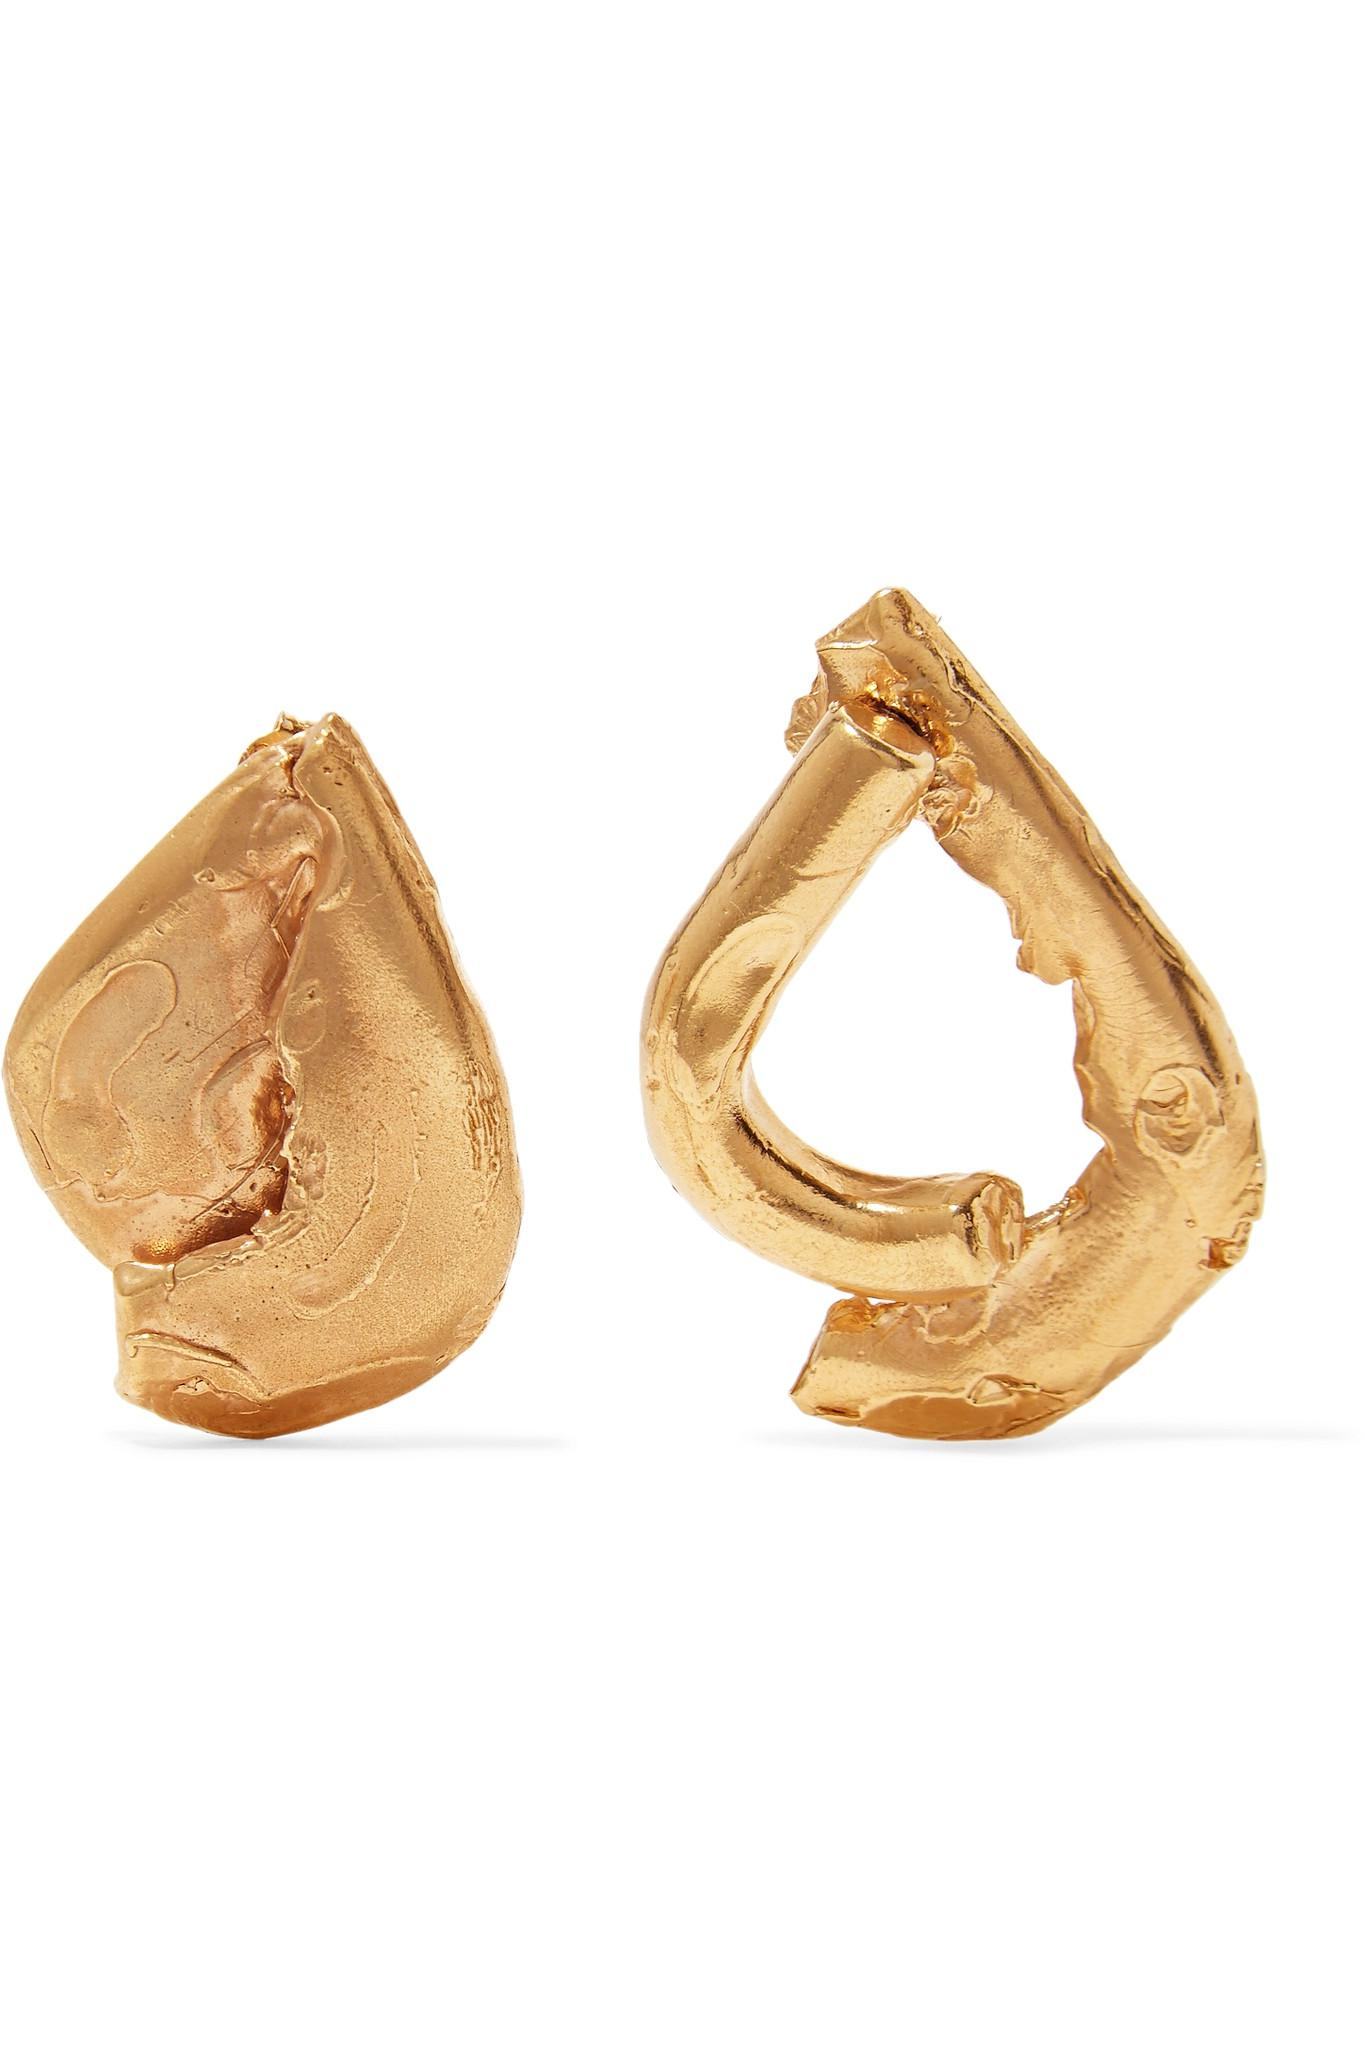 Moment Of Clarity Gold-plated Earrings - one size ALIGHIERI 0GPAZ